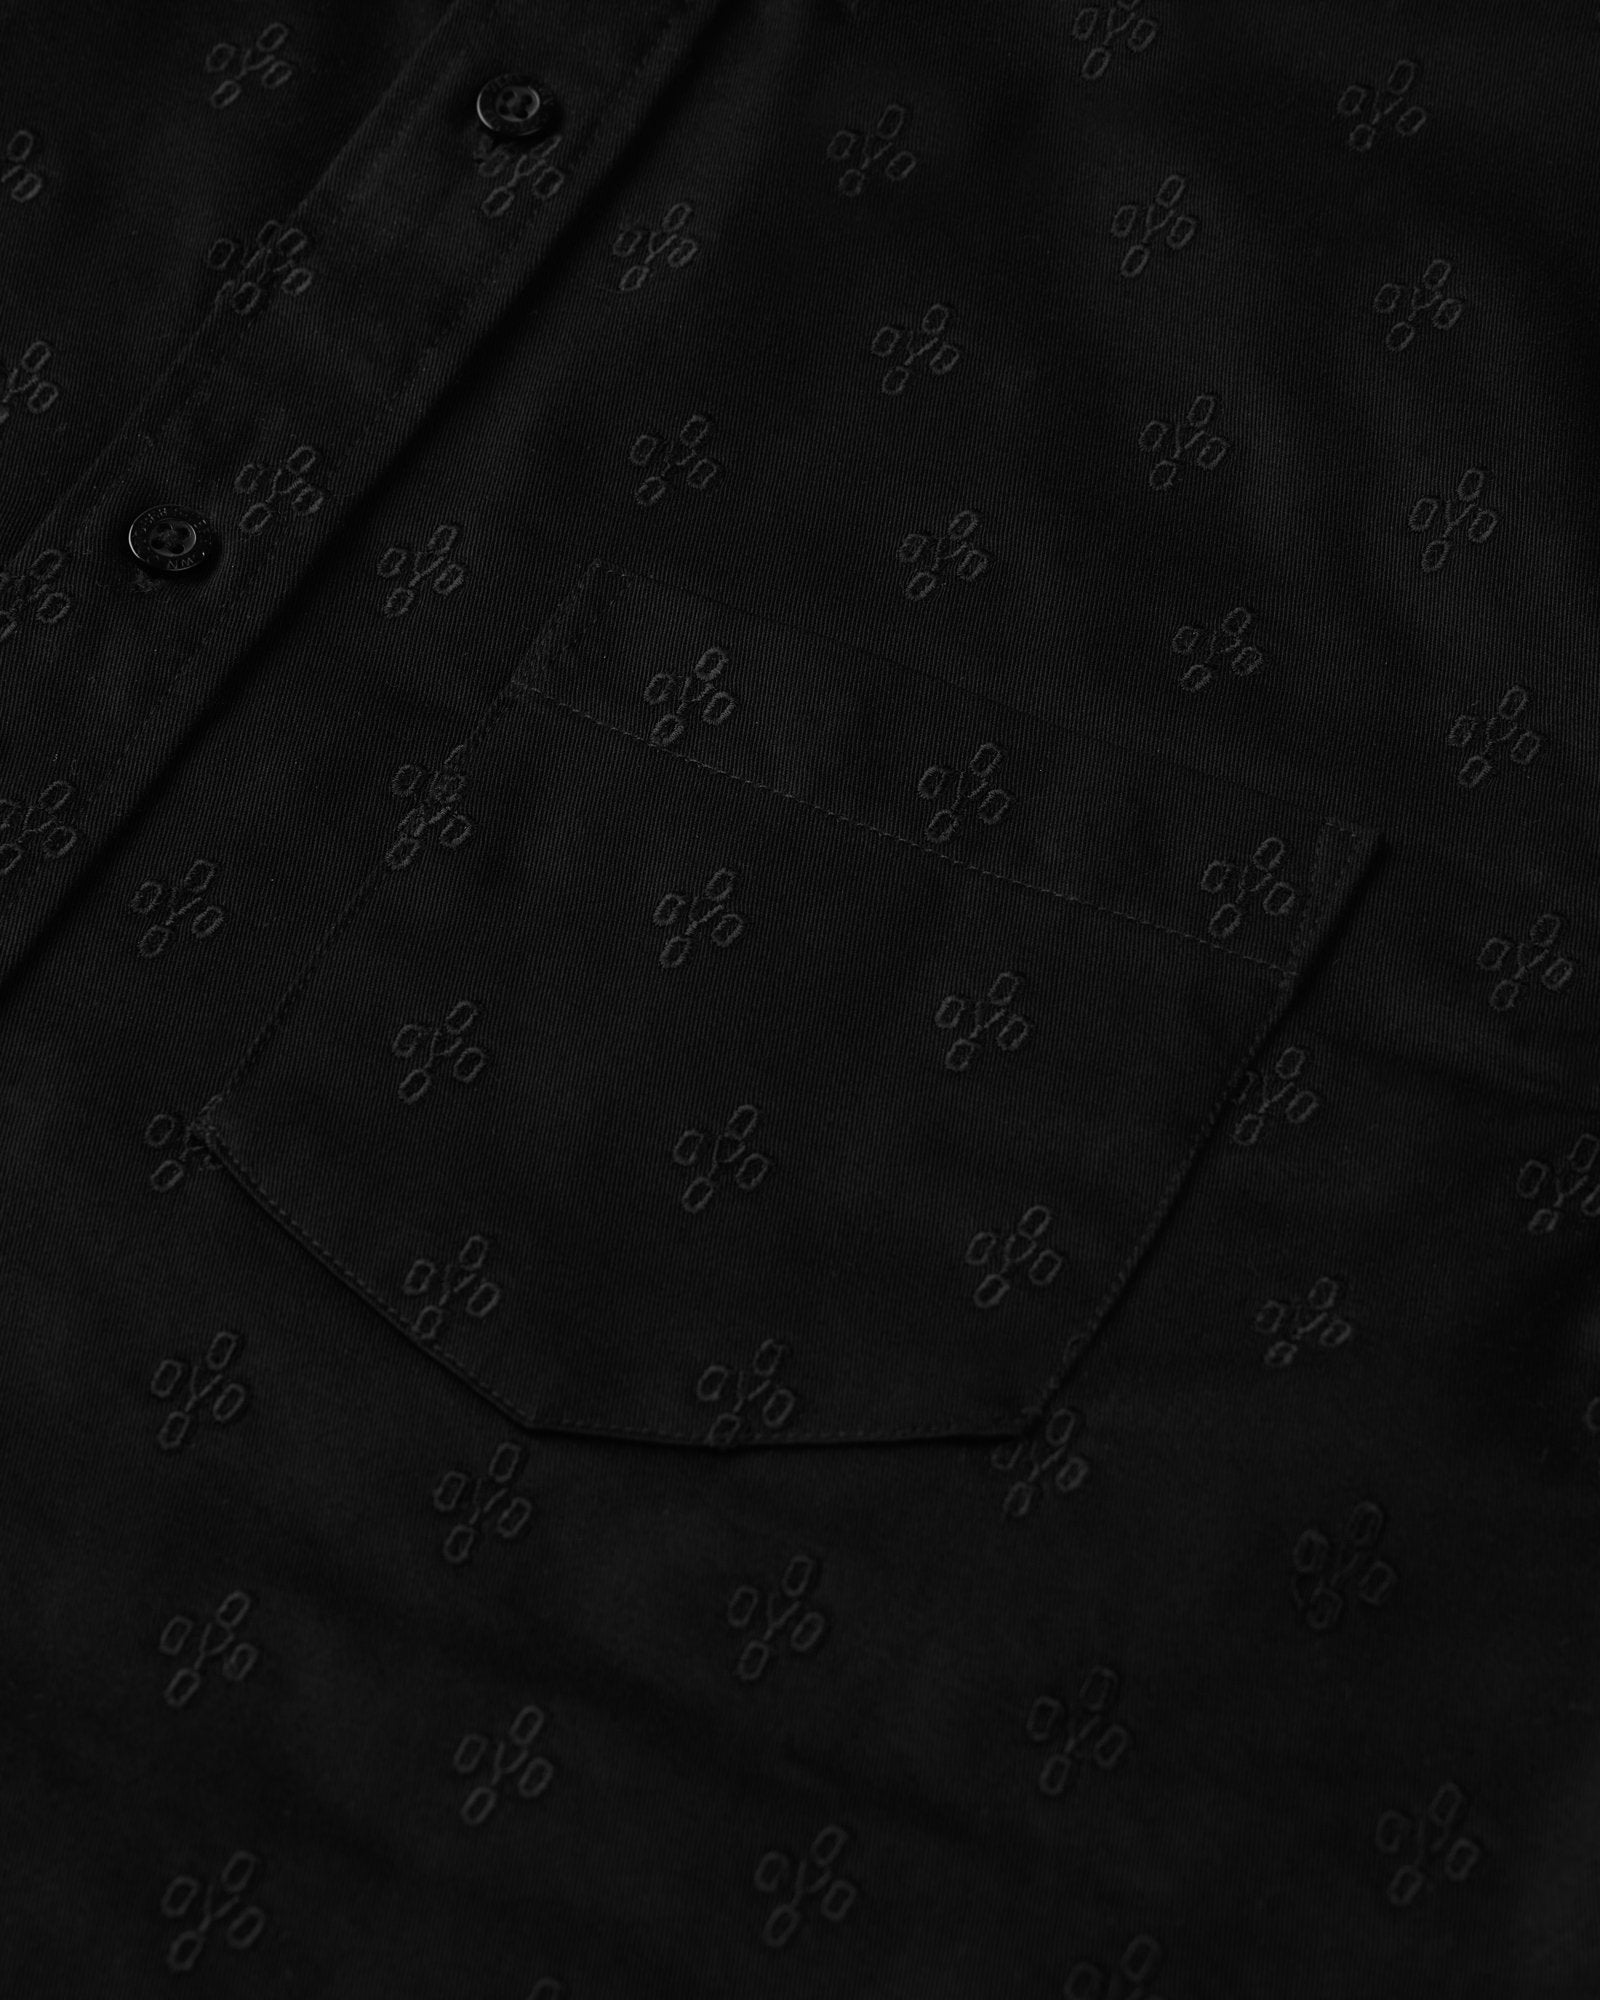 MONOGRAM EMBROIDERED BUTTON DOWN SHIRT - BLACK IMAGE #2